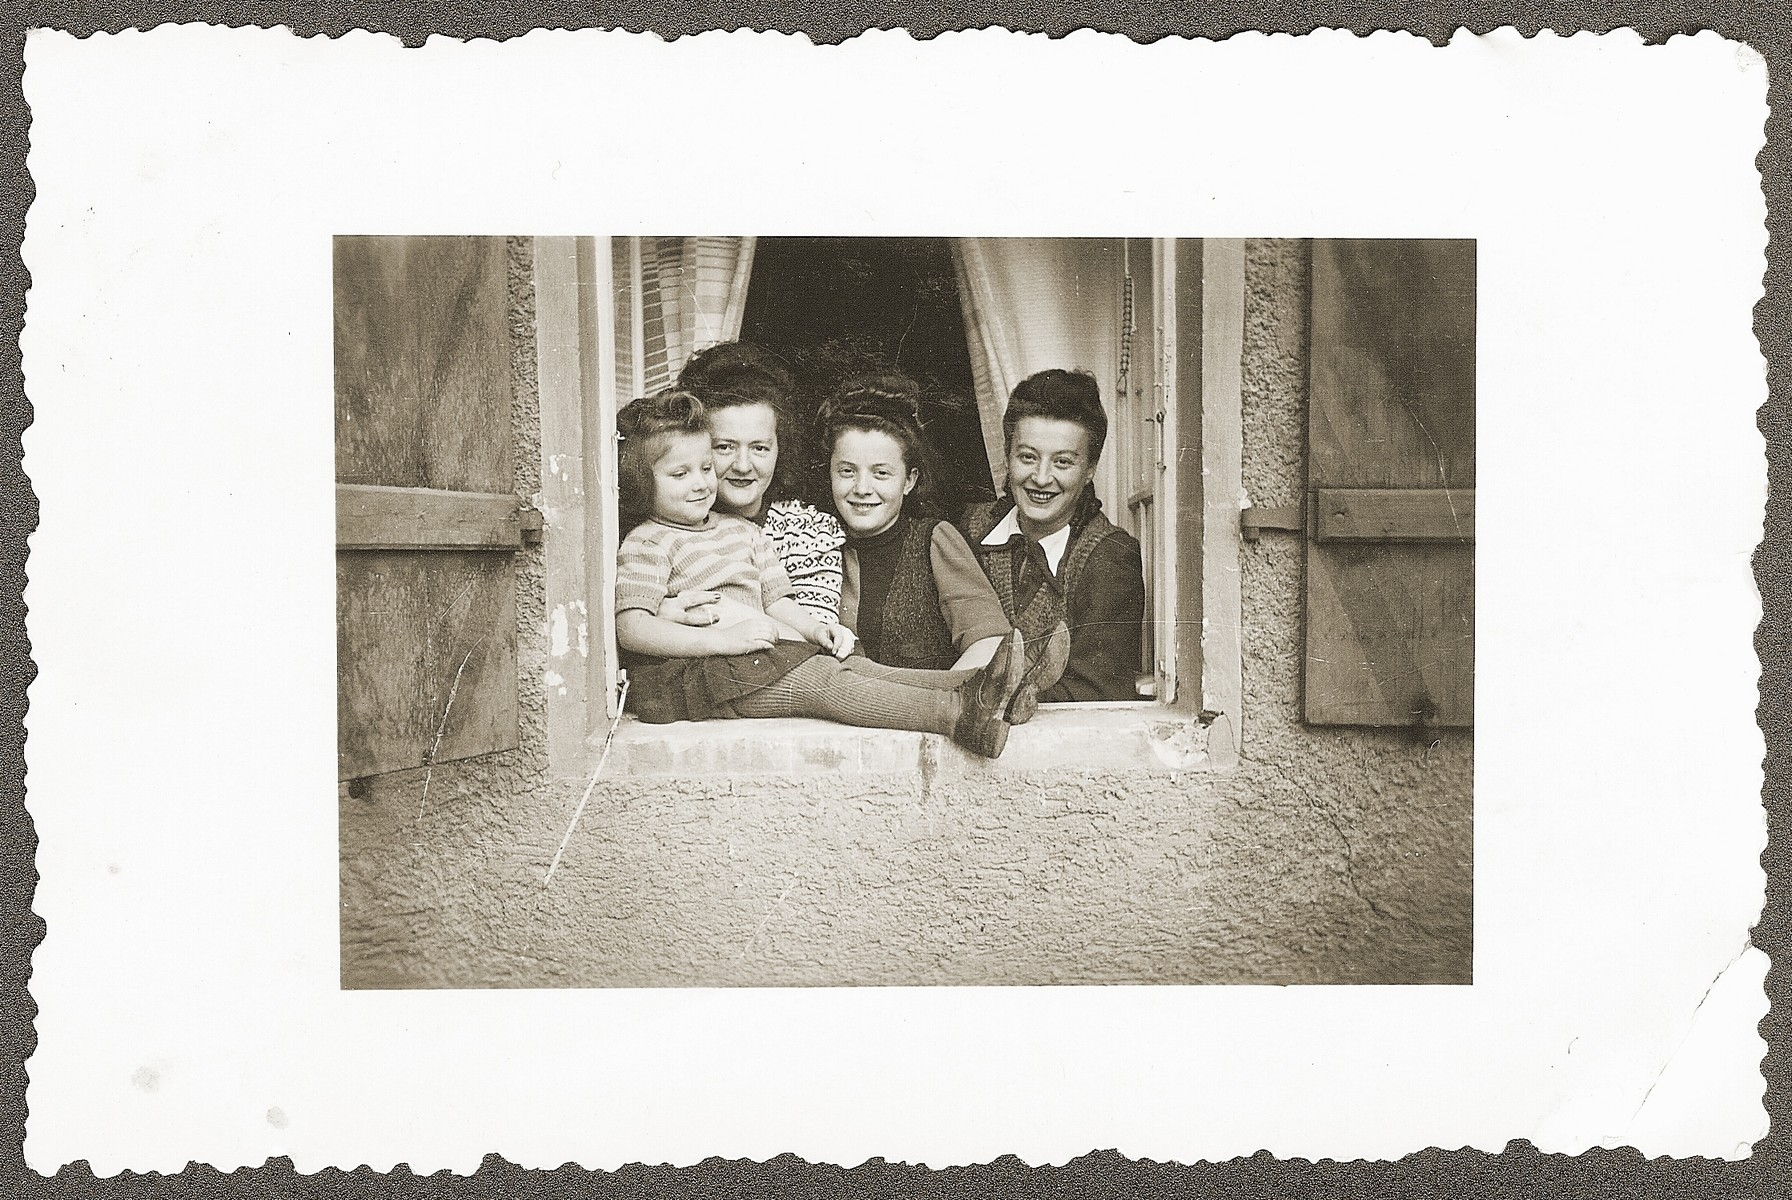 A group of Jewish DPs pose in the window of their residence in Woerth an der Donau.  Pictured from left to right are: Mania Sztajnman, Toby Frimmerman Sztajnman (holding Mania), Nacha Kleinberg, and Chava Frimmerman.